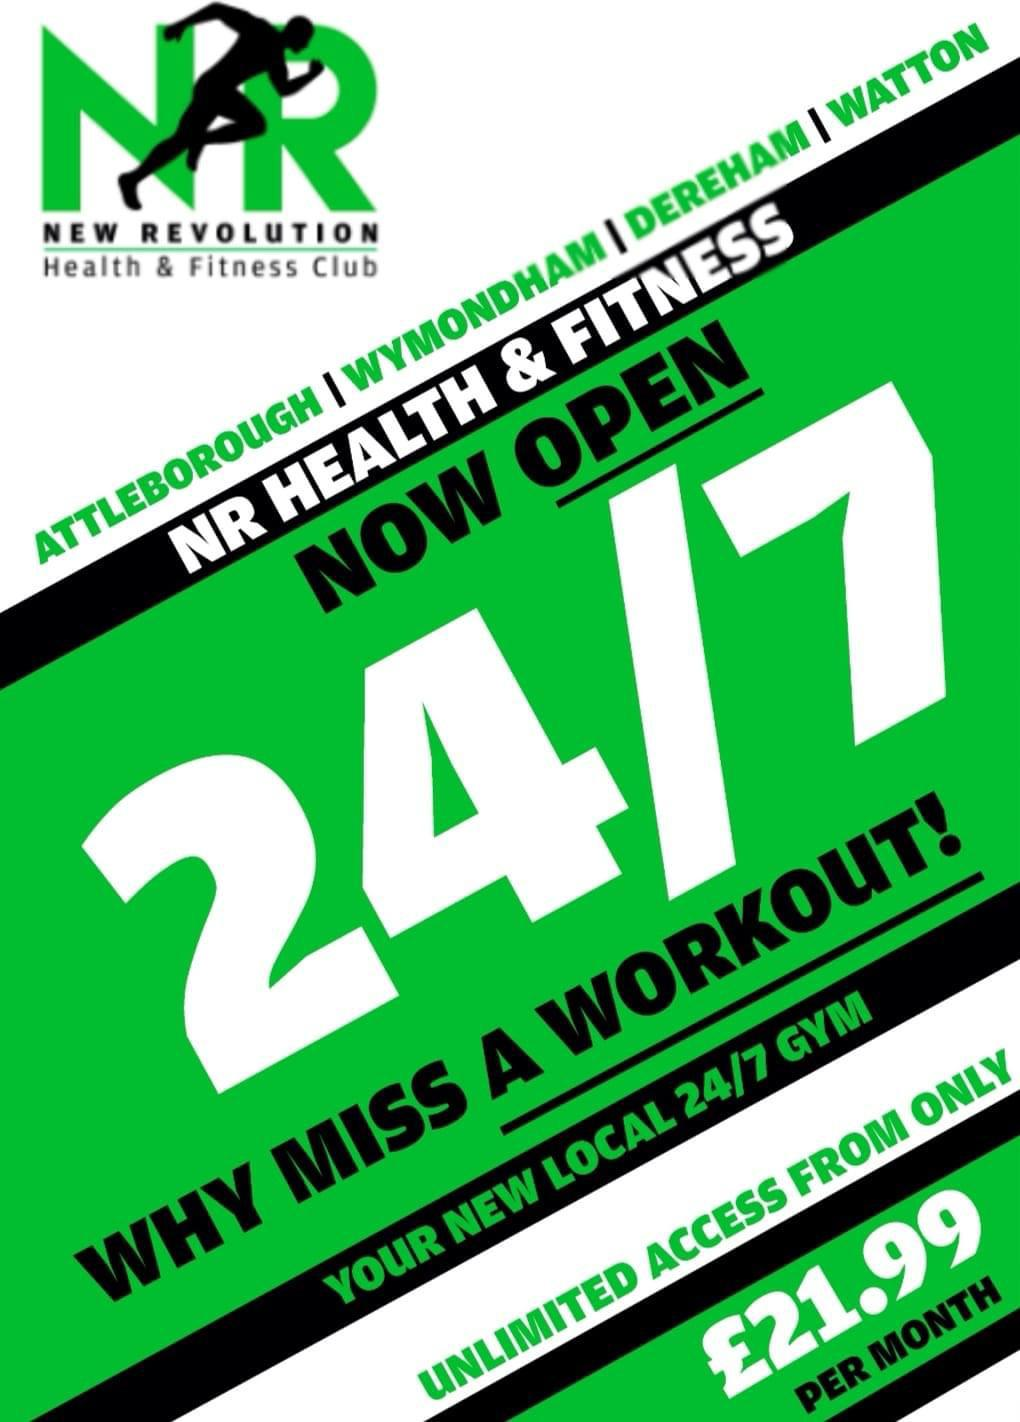 New 24/7 opening hours